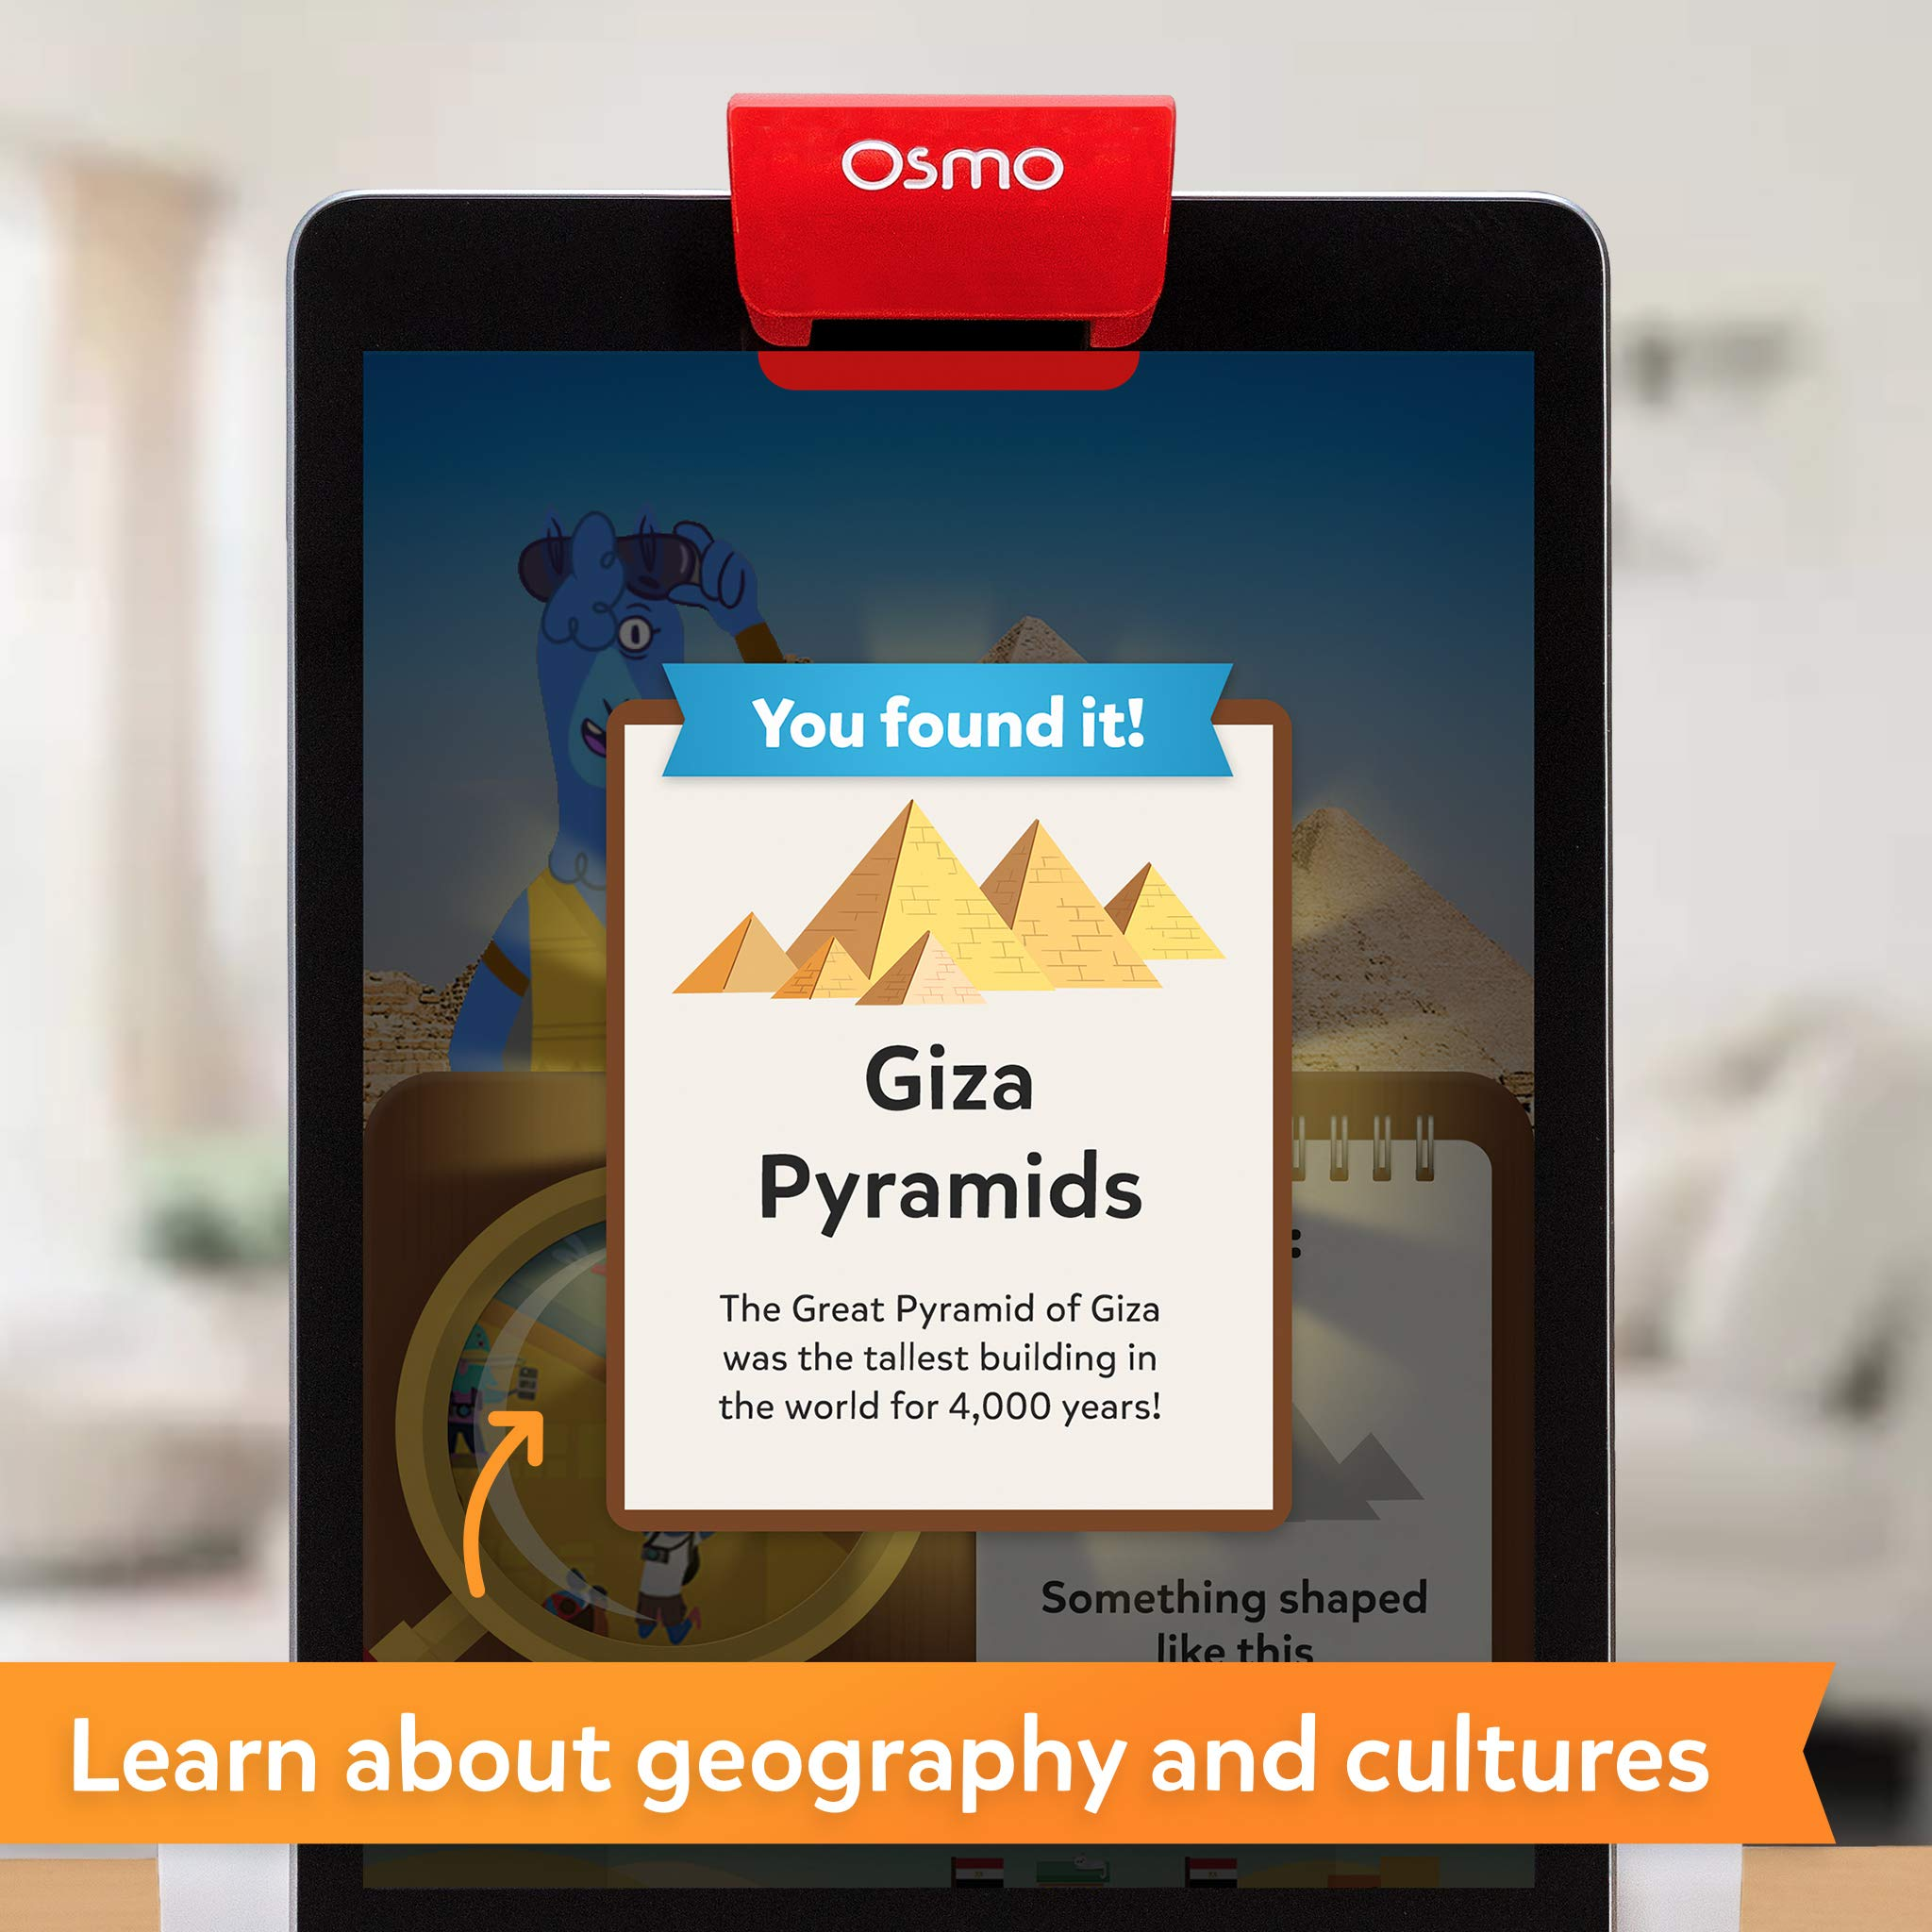 Osmo - Detective Agency: A Search & Find Mystery Game - Ages 5-12 - Explore The World - For iPad and Fire Tablet (Osmo Base Required) by Osmo (Image #6)